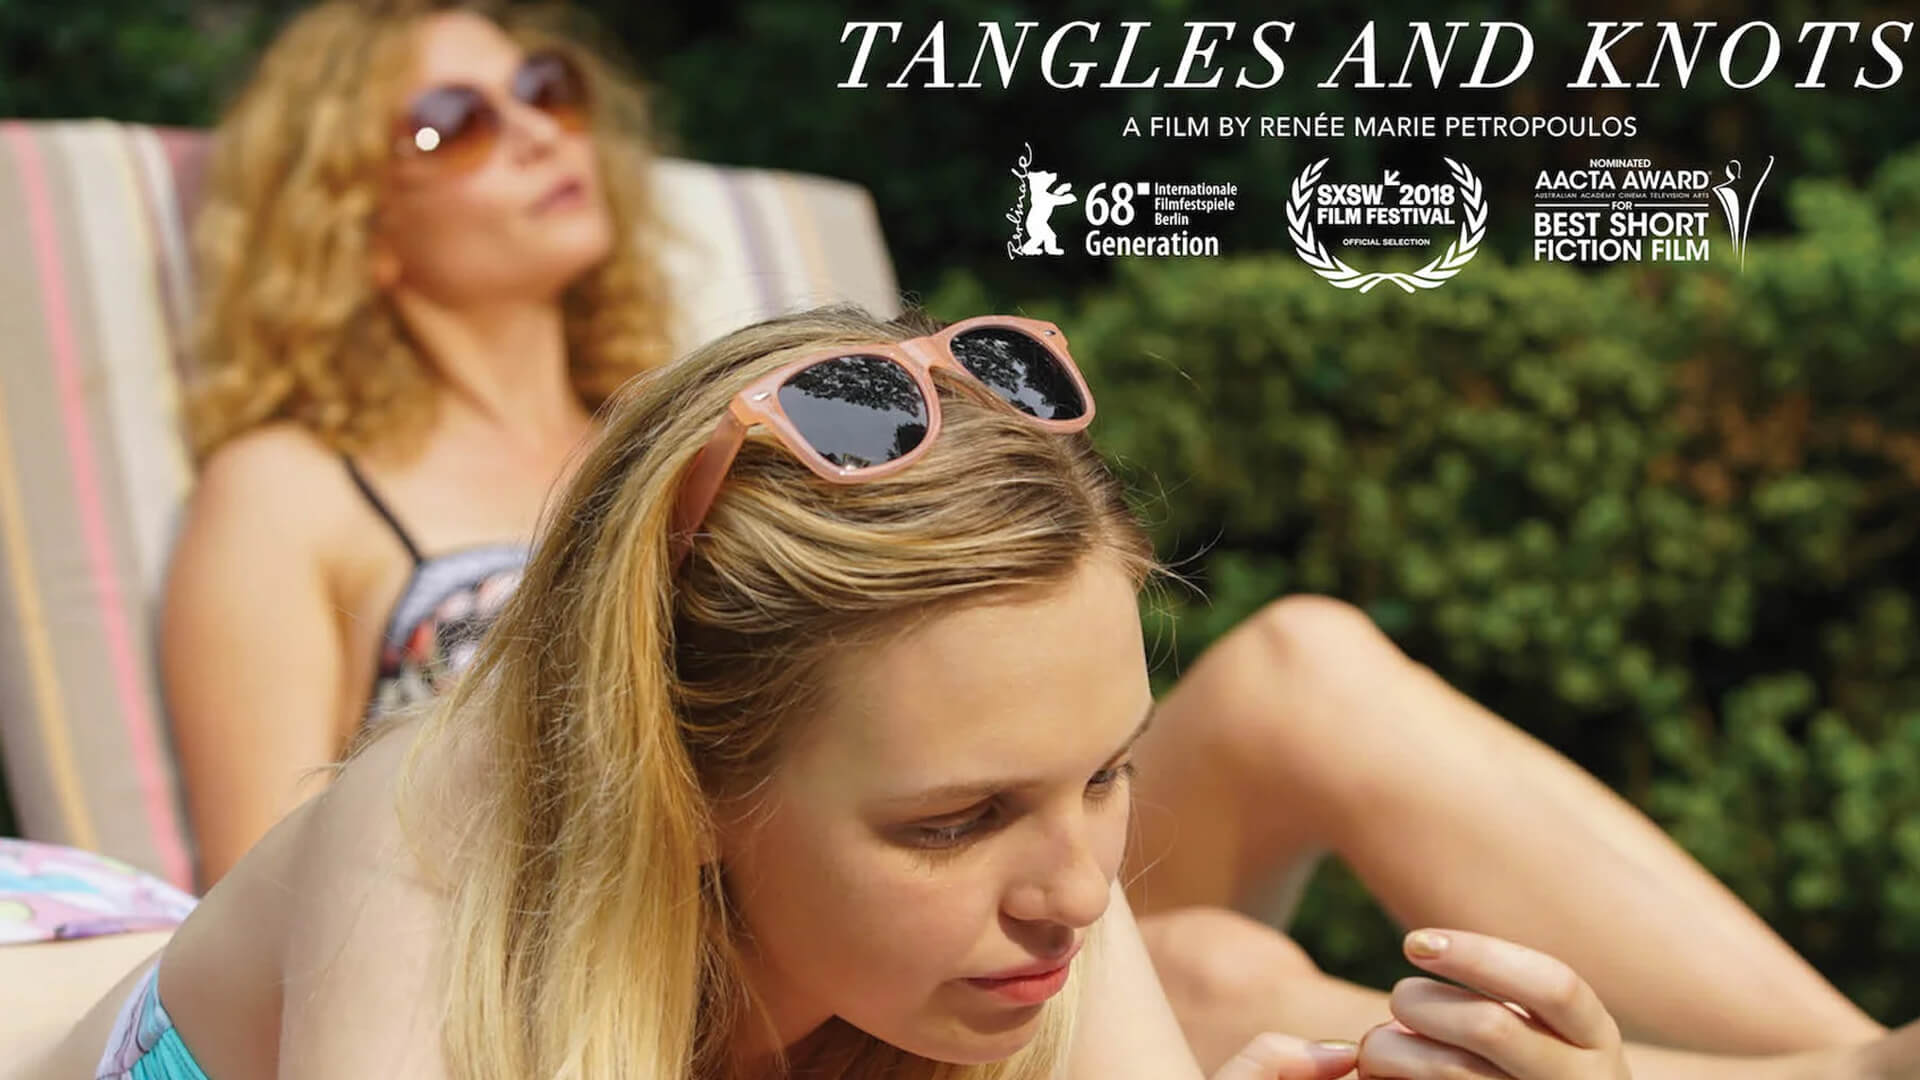 Tangles and Knots